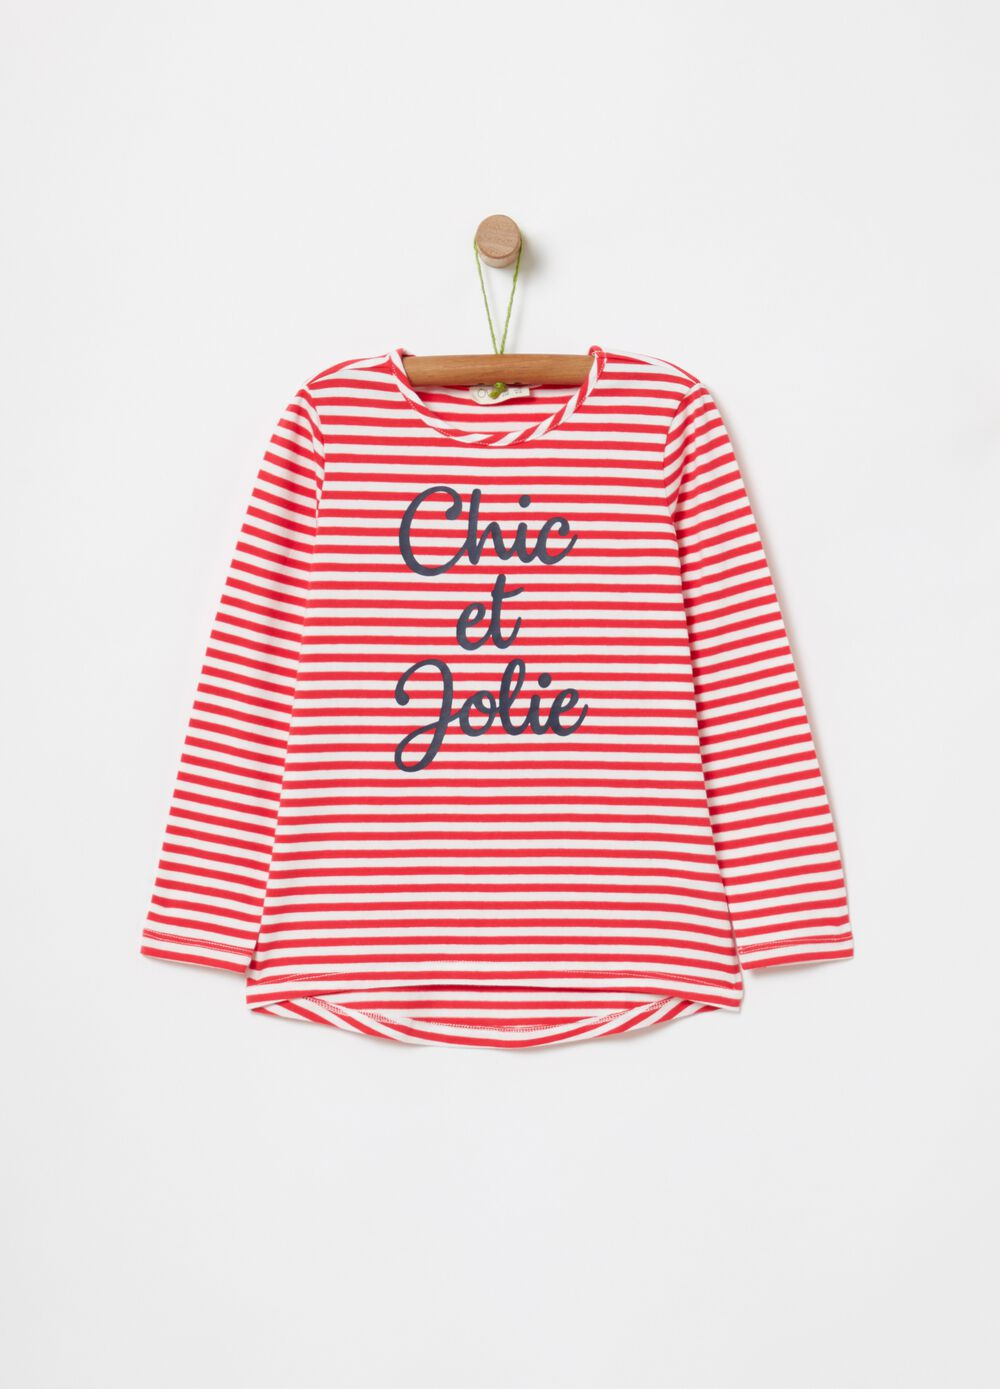 T-shirt with print and stripes